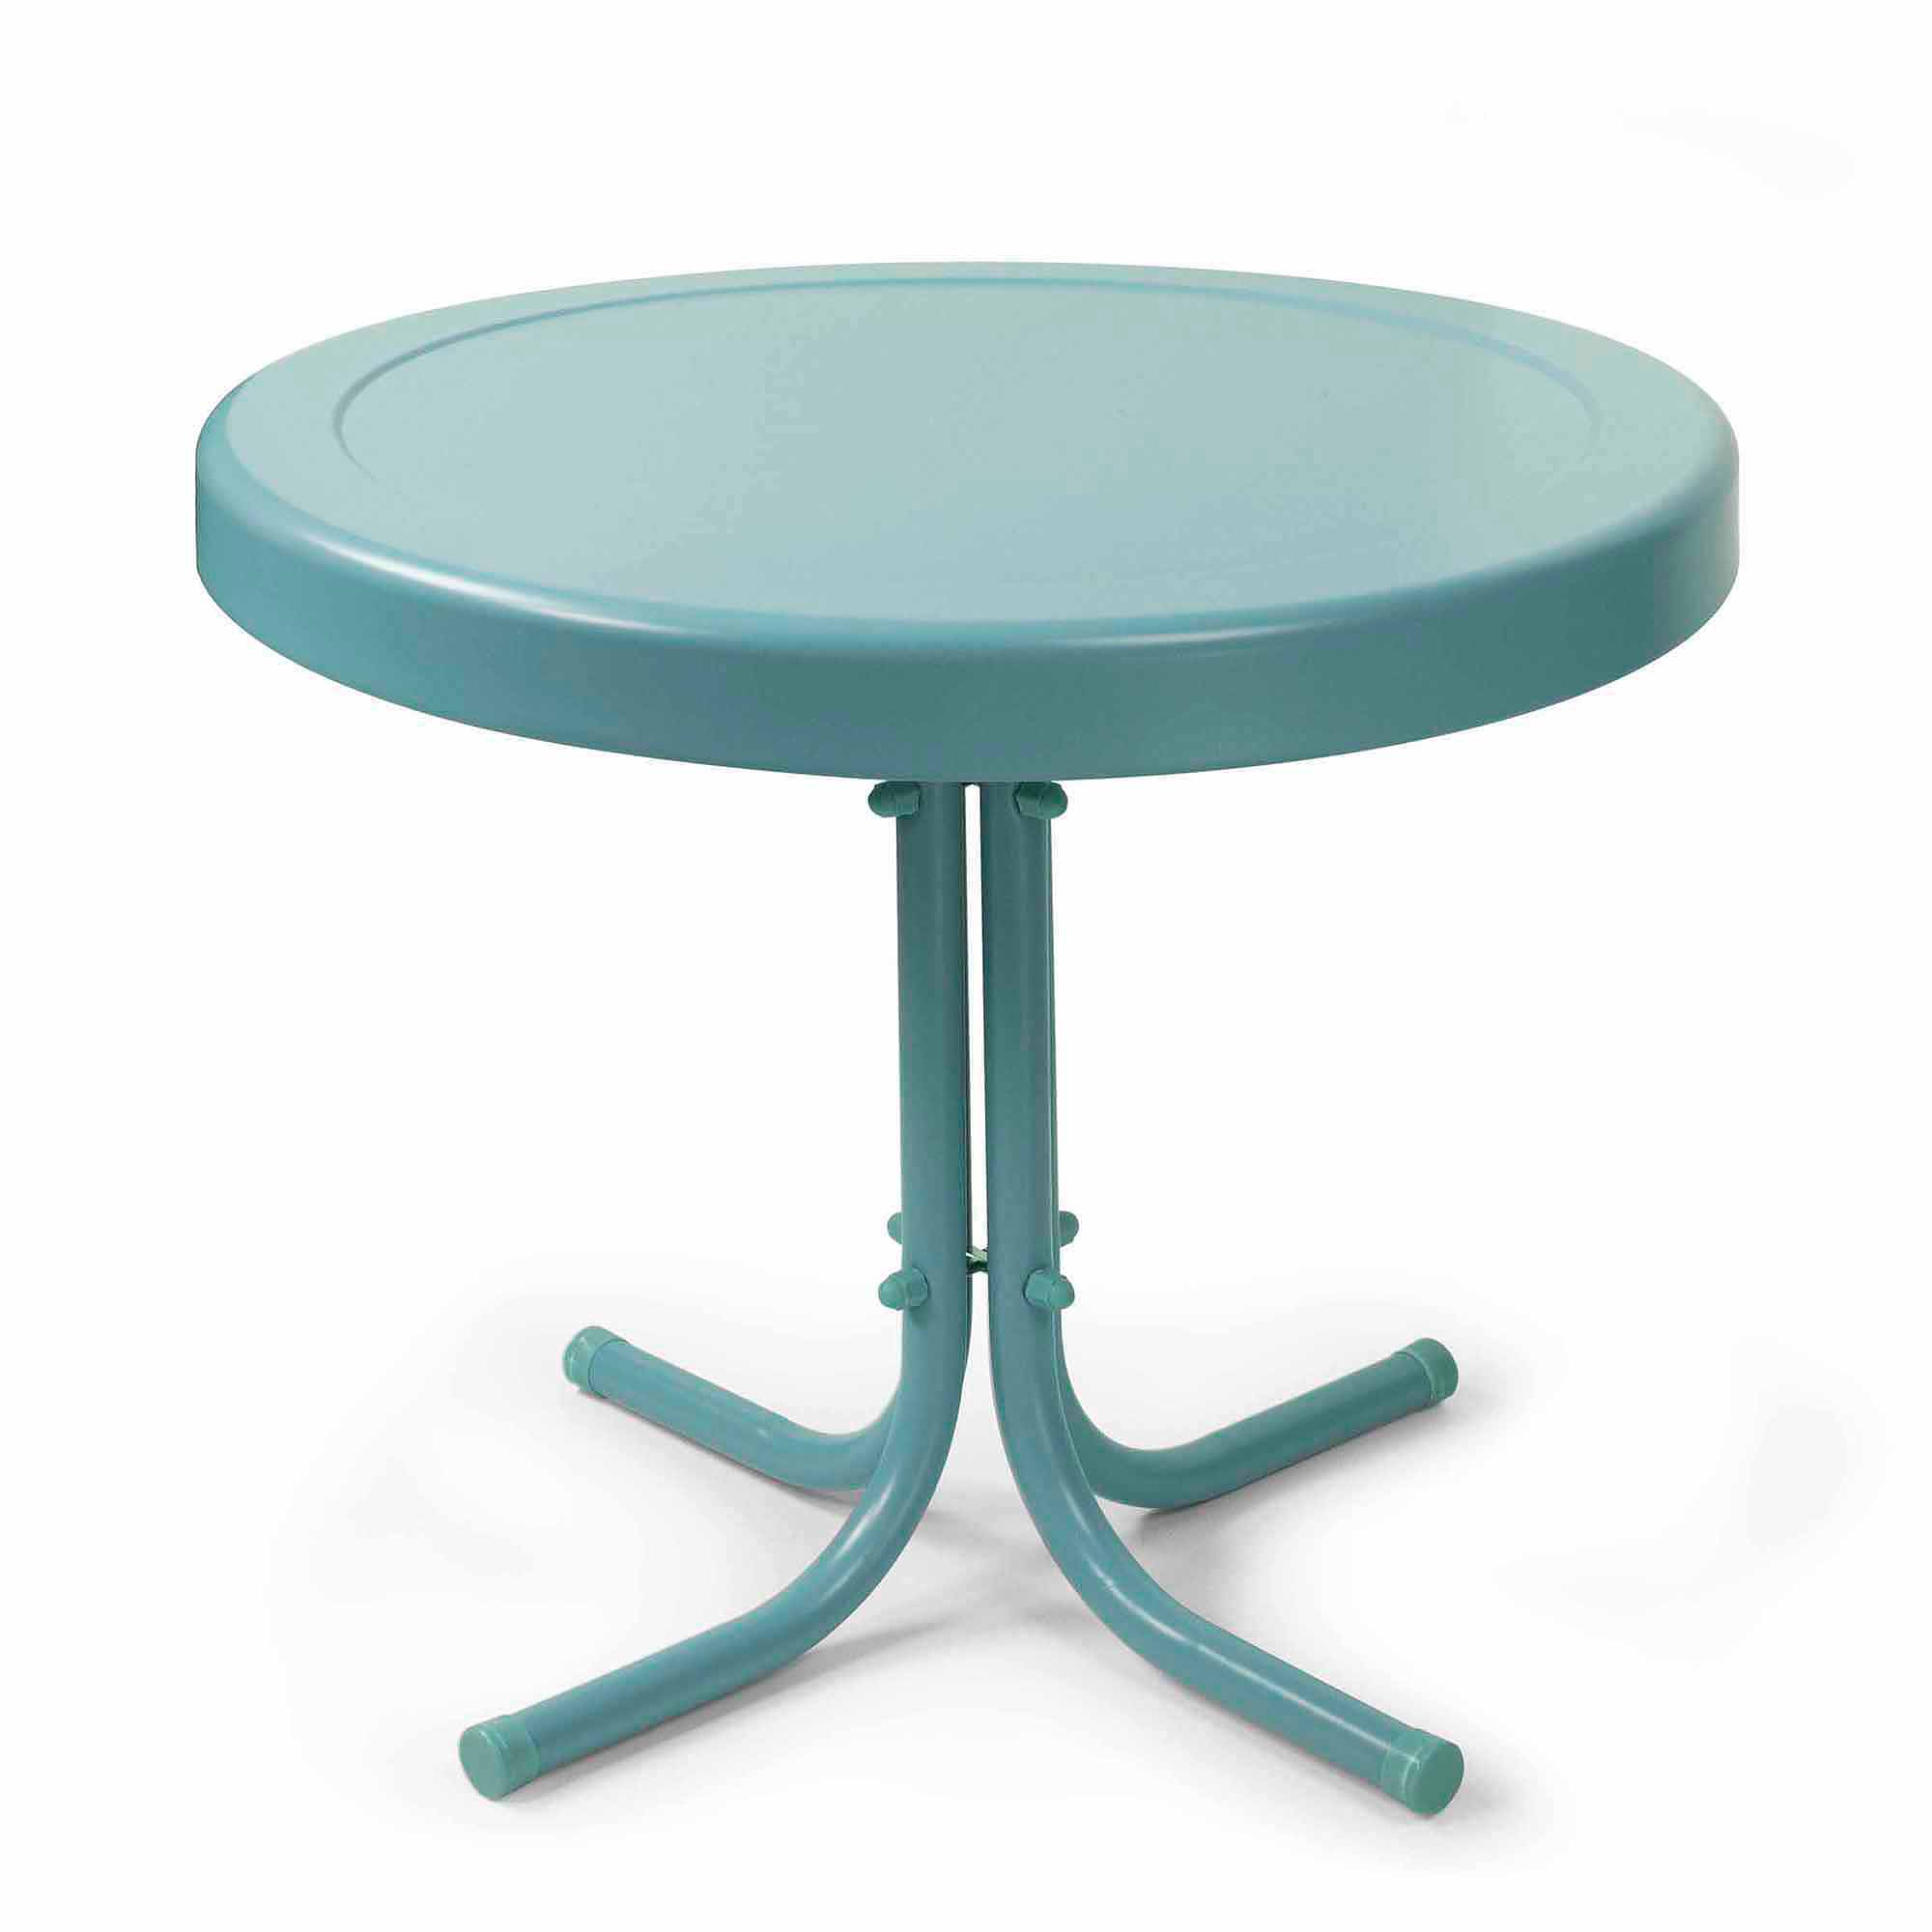 vintage end table with drawer the outrageous beautiful teal round crosley furniture retro metal side inch trunk box threshold mirrored accent ikea frame shelf steel coffee base